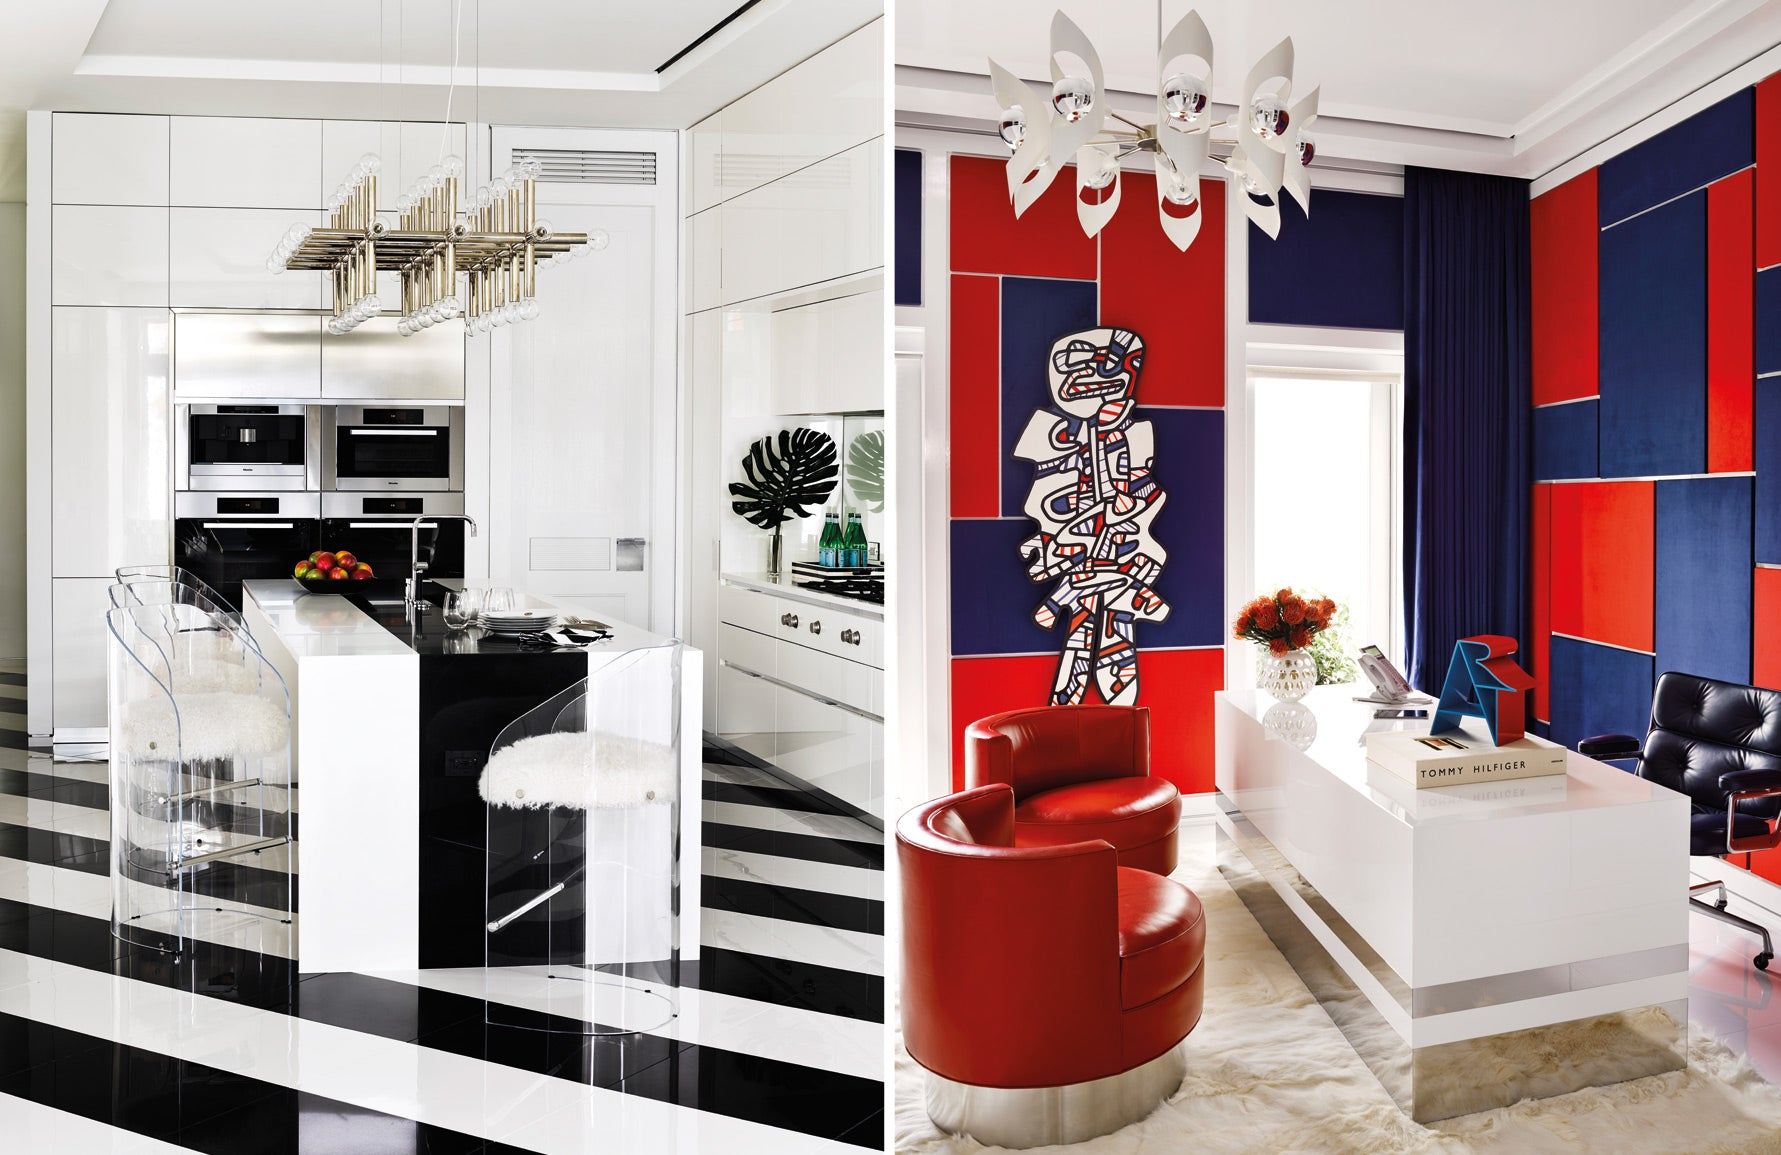 Tommy Hilfiger home | Martyn Lawrence Bullard | Celebrity interior designer | Pop Art interiors | Read more in The Luxurist at LuxDeco.com